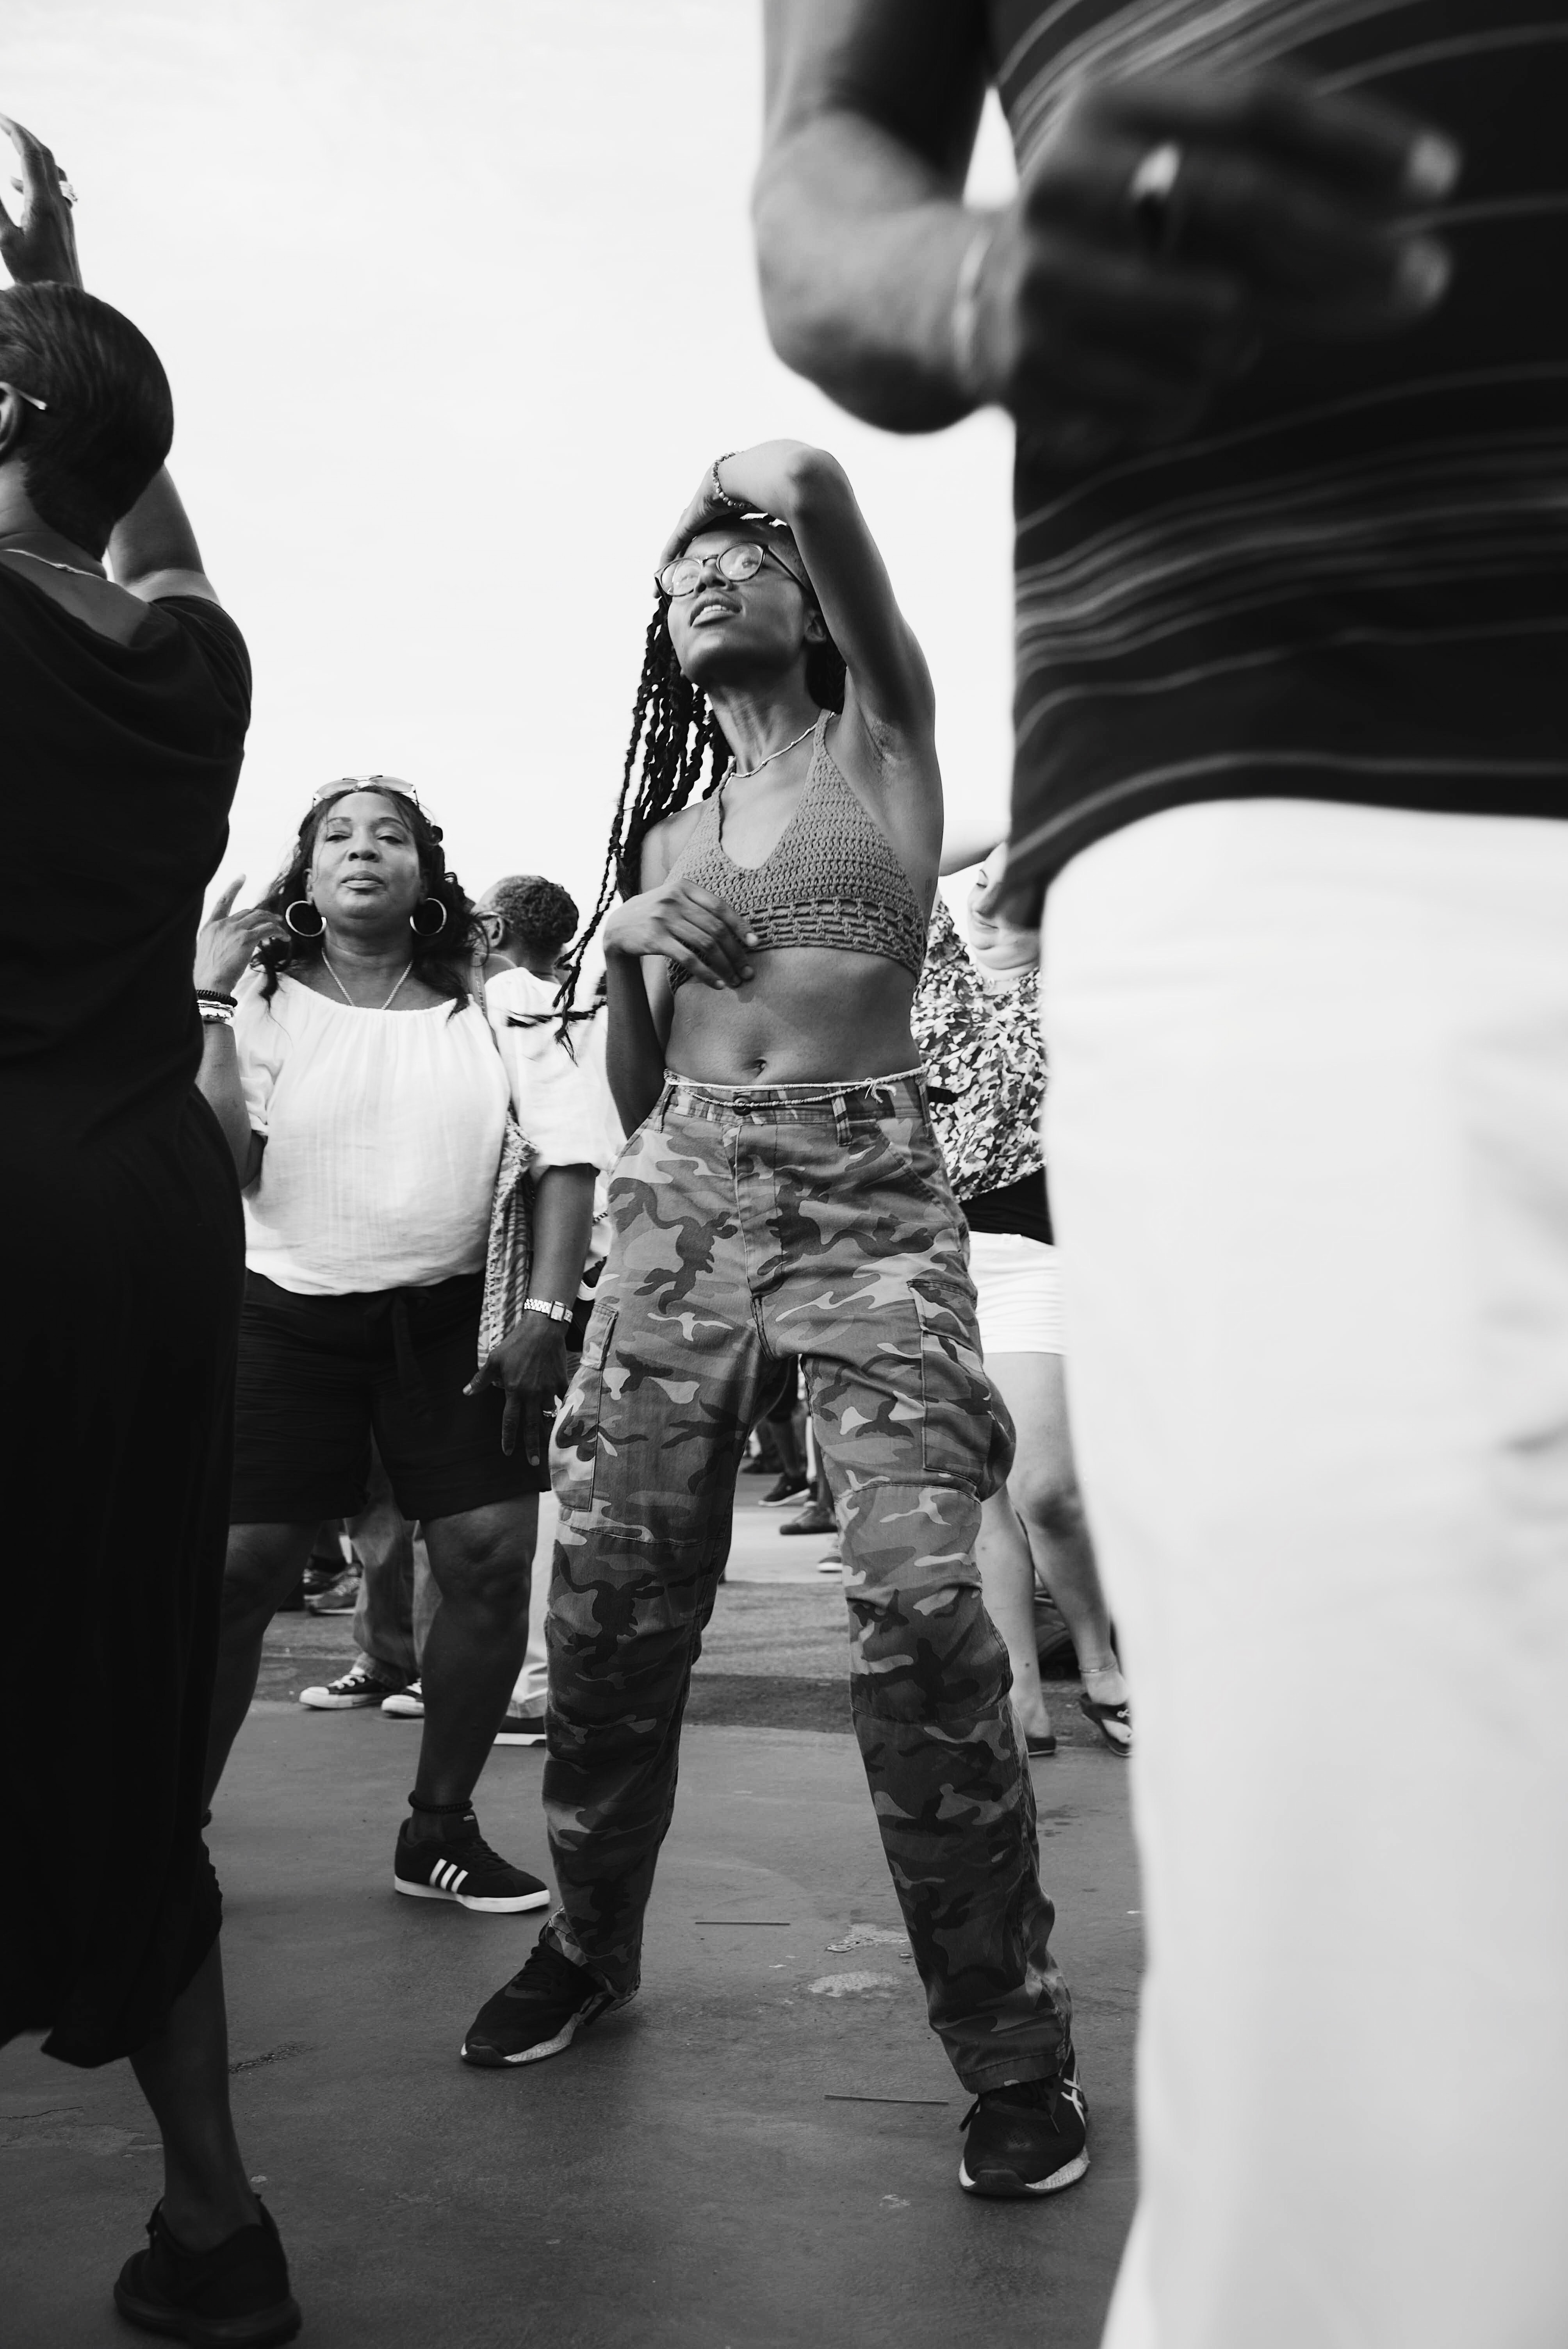 grayscale photo of woman dancing surrounded by people